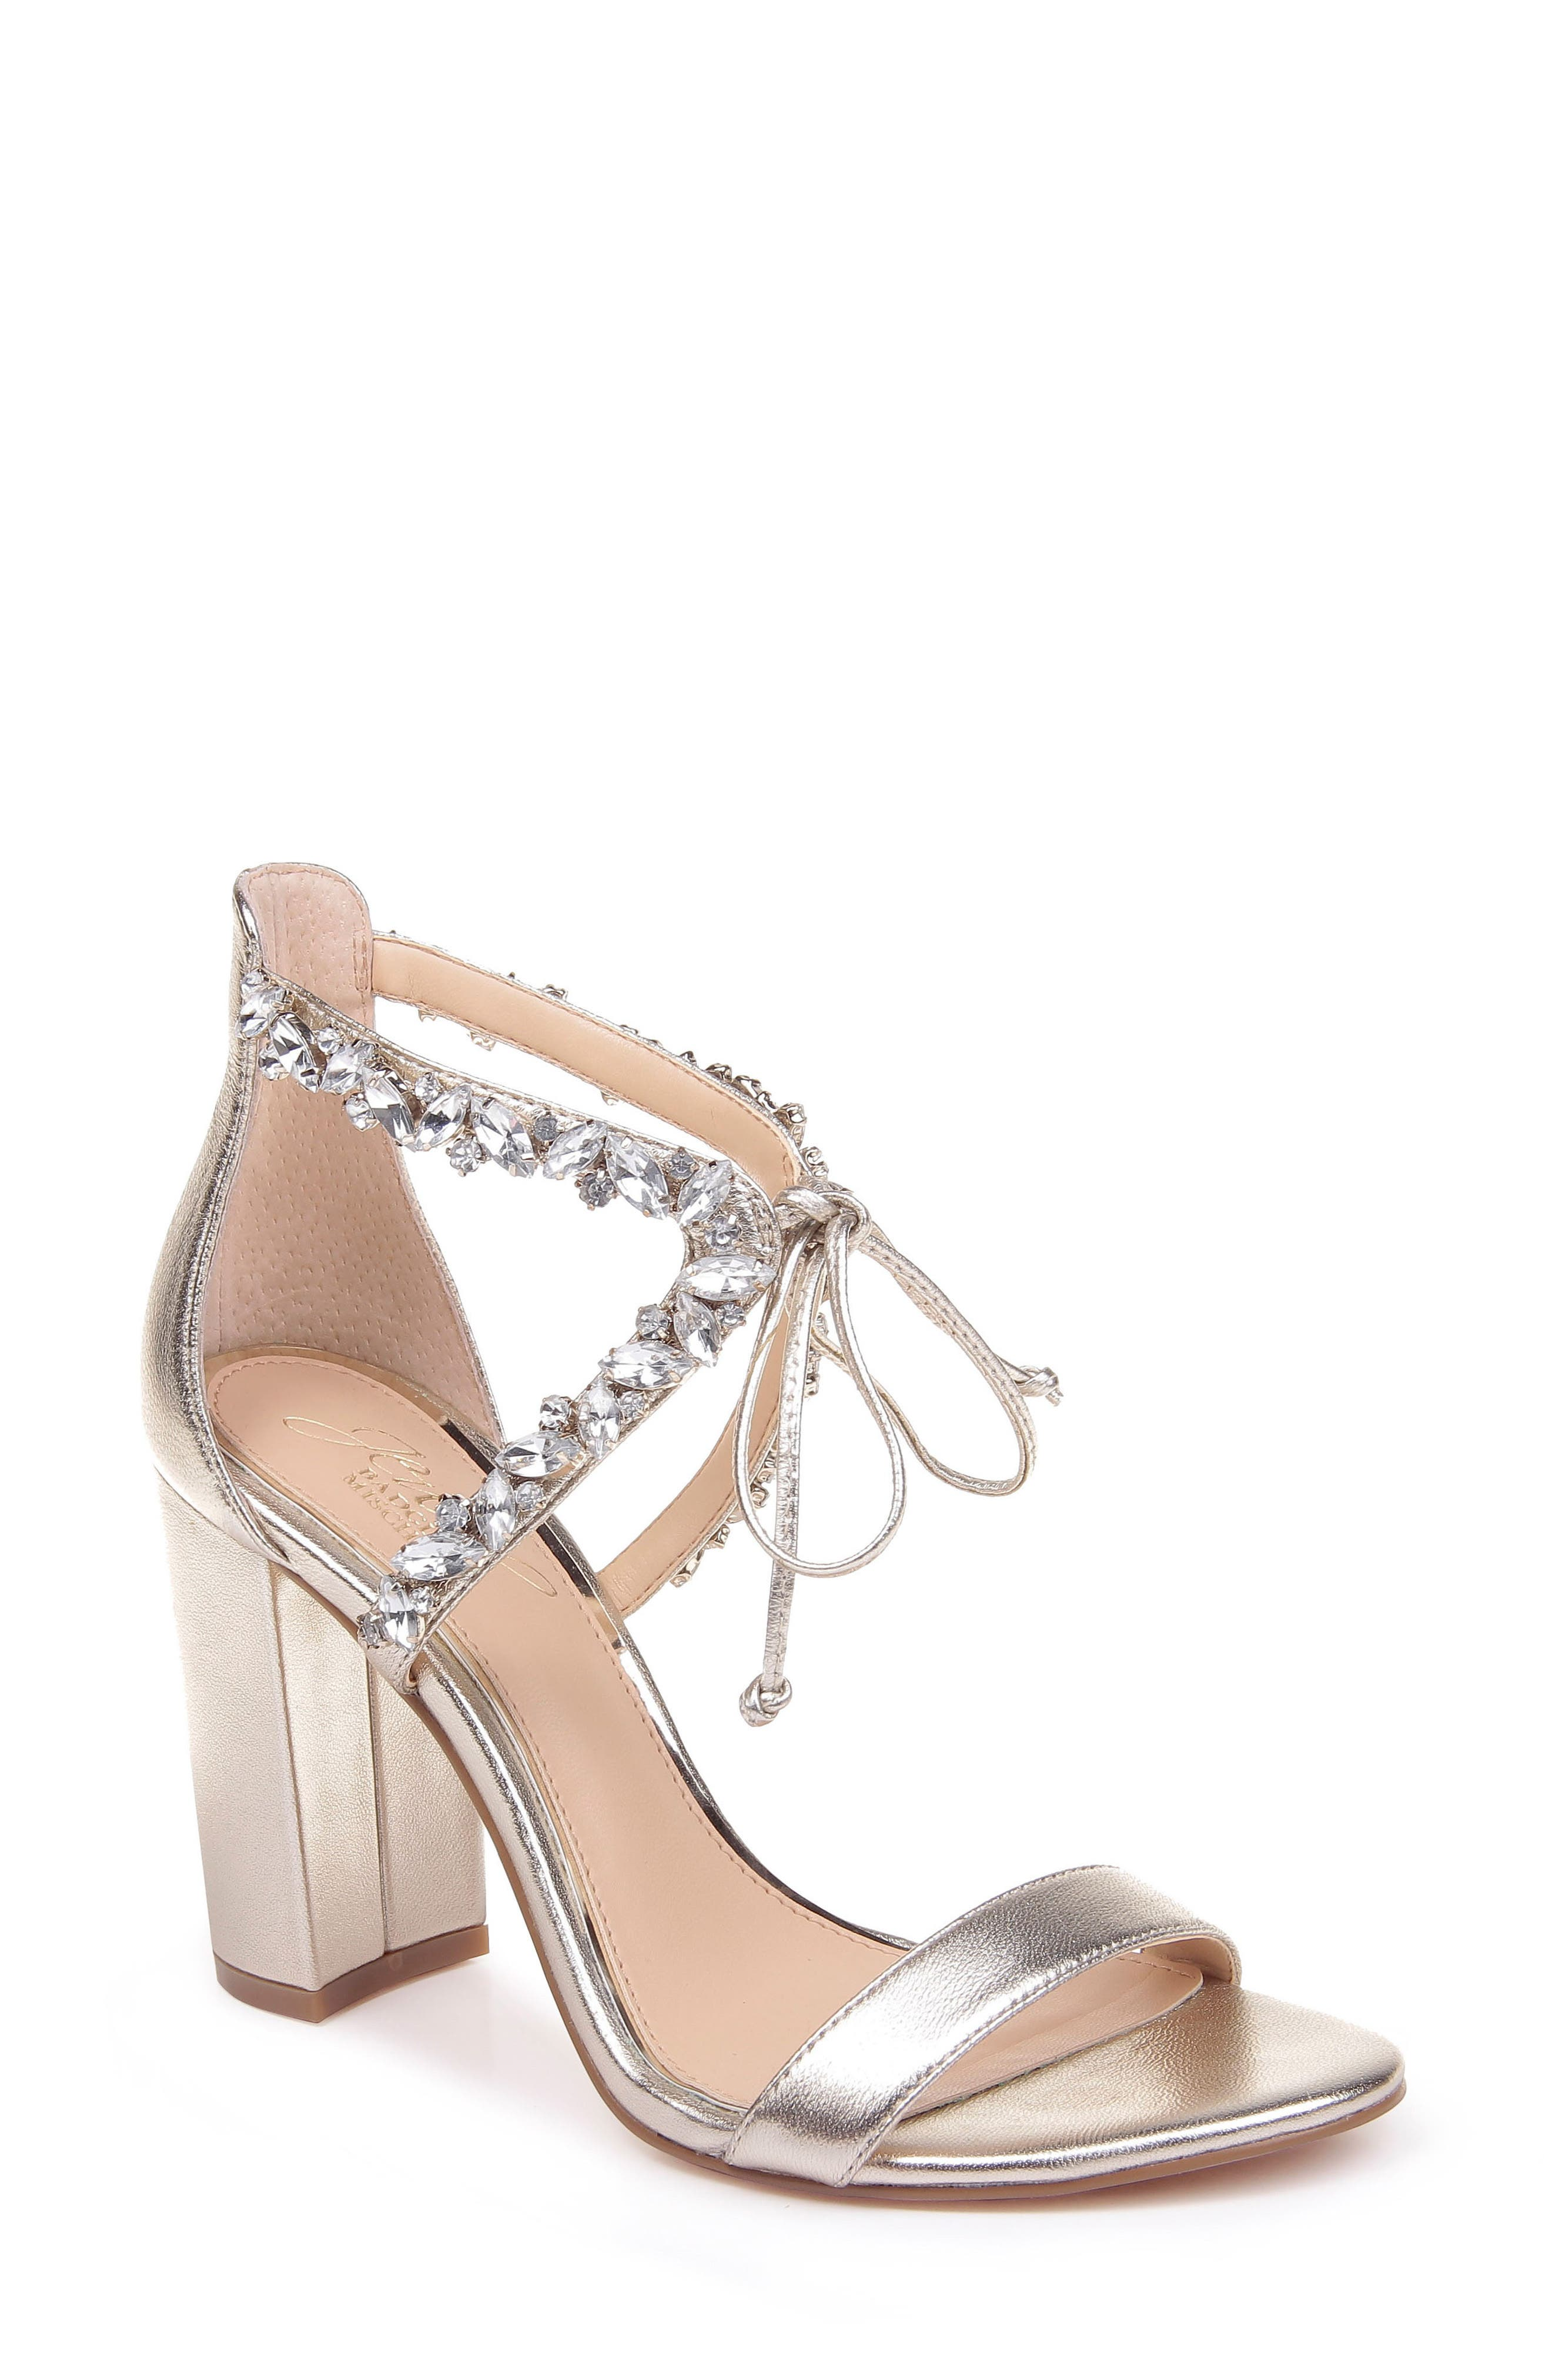 Faceted crystals add showstopping glamour to an elegant evening sandal lifted skyward by a wrapped block heel. Style Name: Jewel Badgley Mischka Thamar Embellished Sandal (Women). Style Number: 5567586. Available in stores.